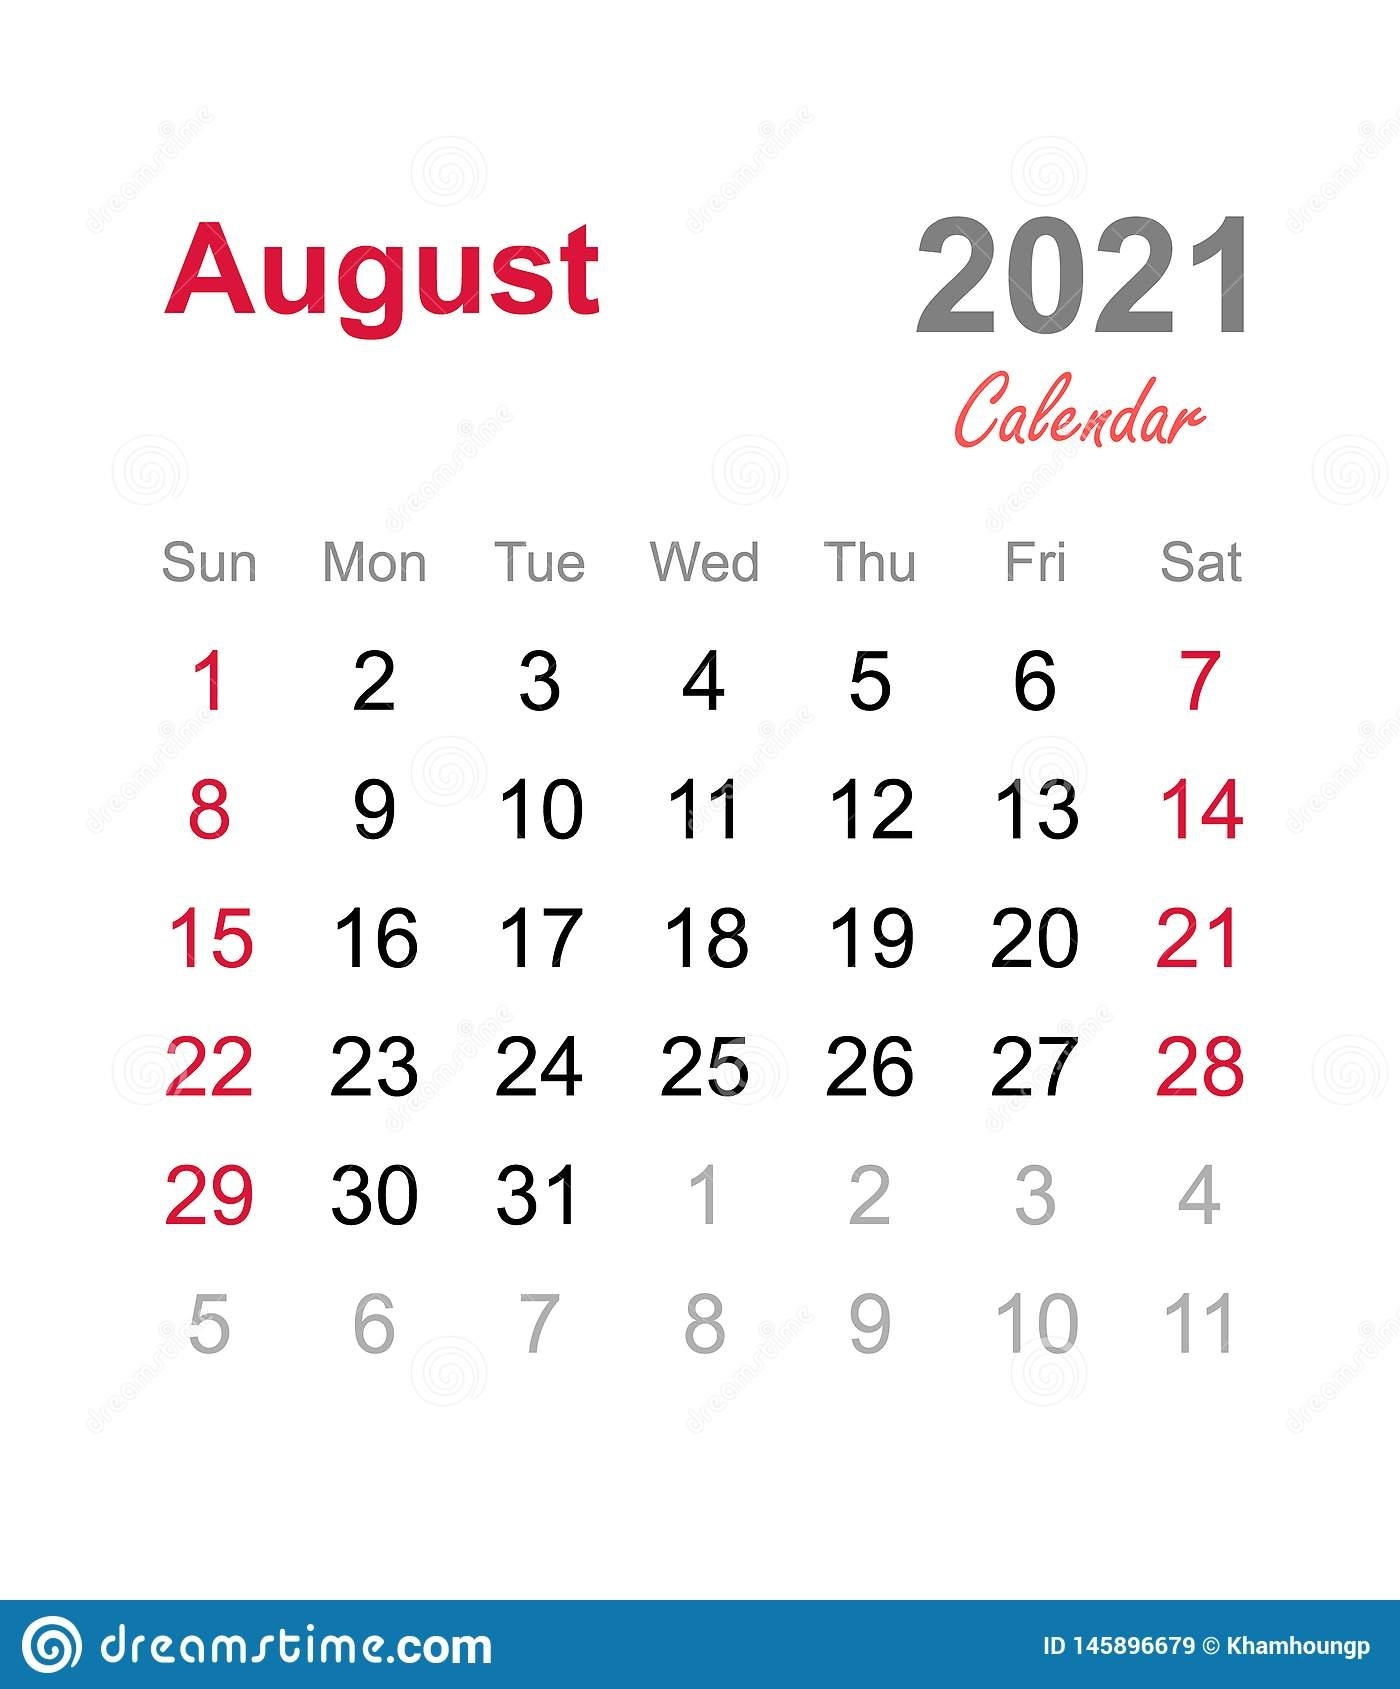 Take Clip Art Calendar For August 2021